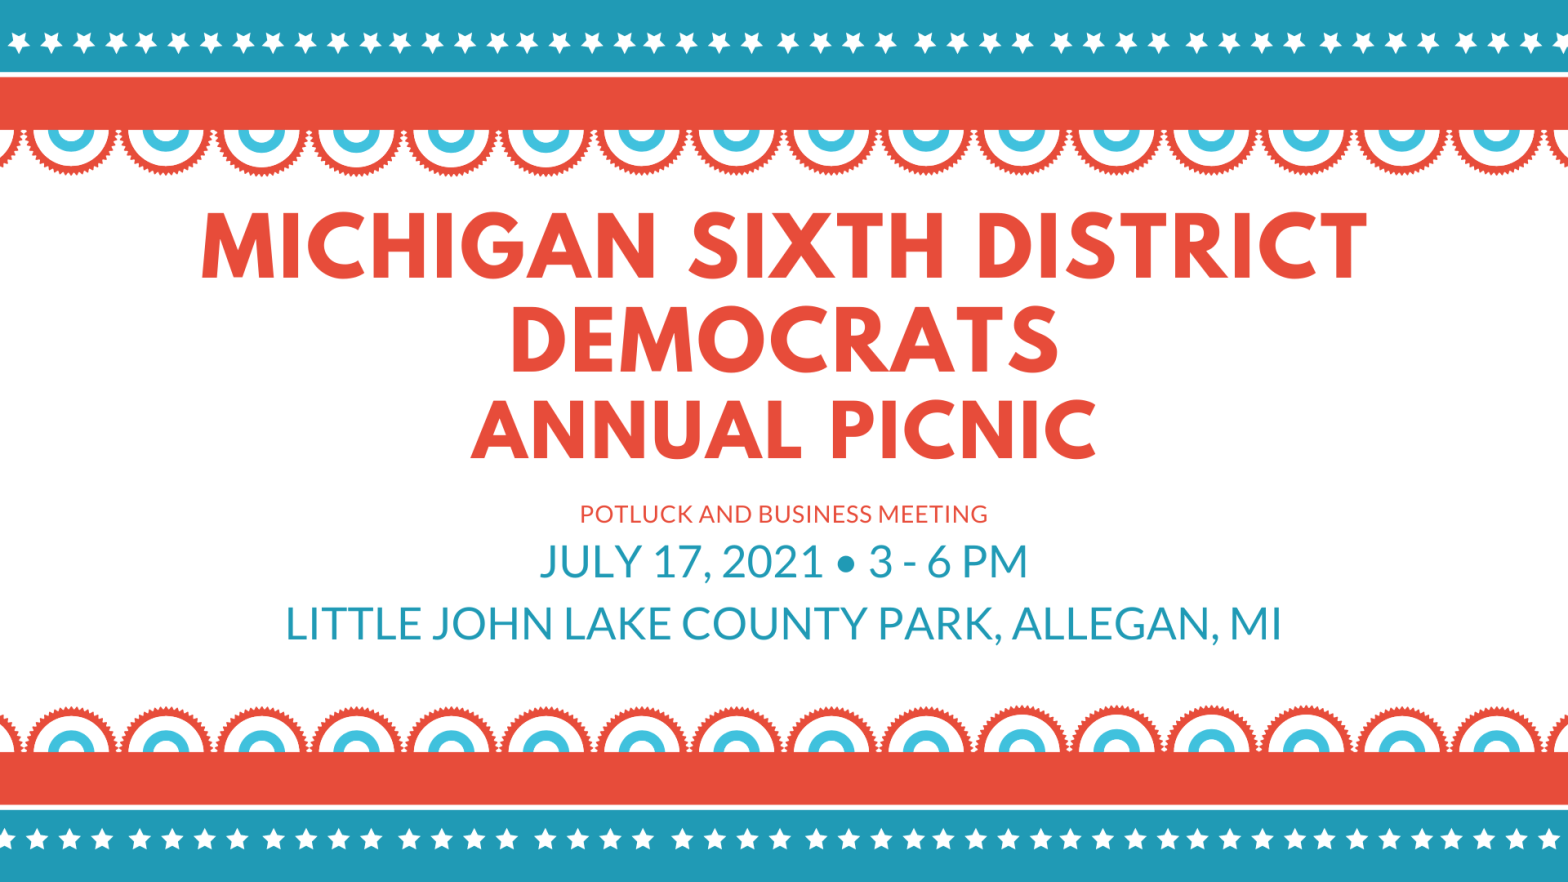 Annual Picnic and Business Meeting - 7/17/21